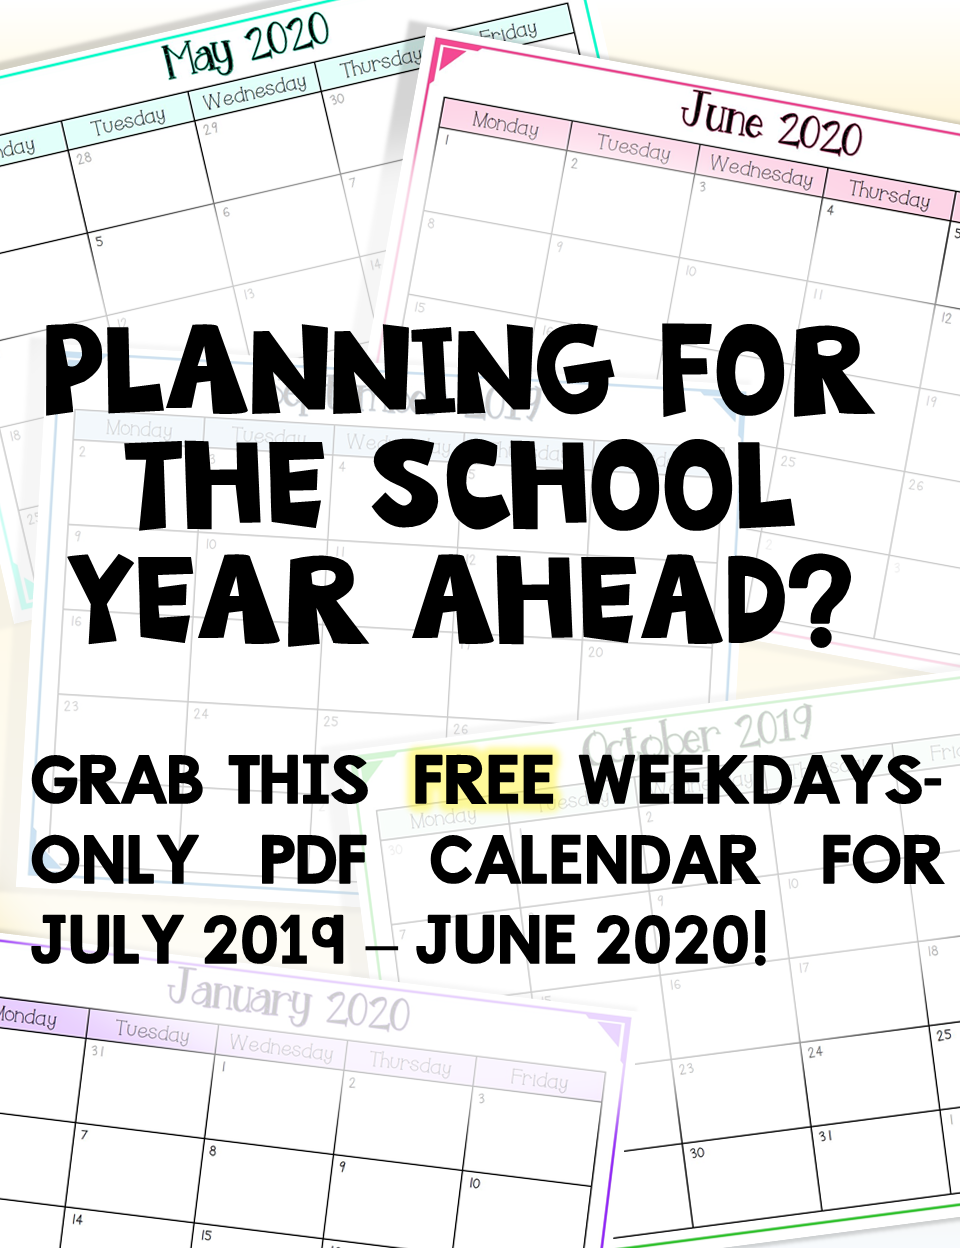 Ideas For Visiting Teaching June 2020 2019 2020 FREE School Year Calendar (Weekdays Only) | Teaching